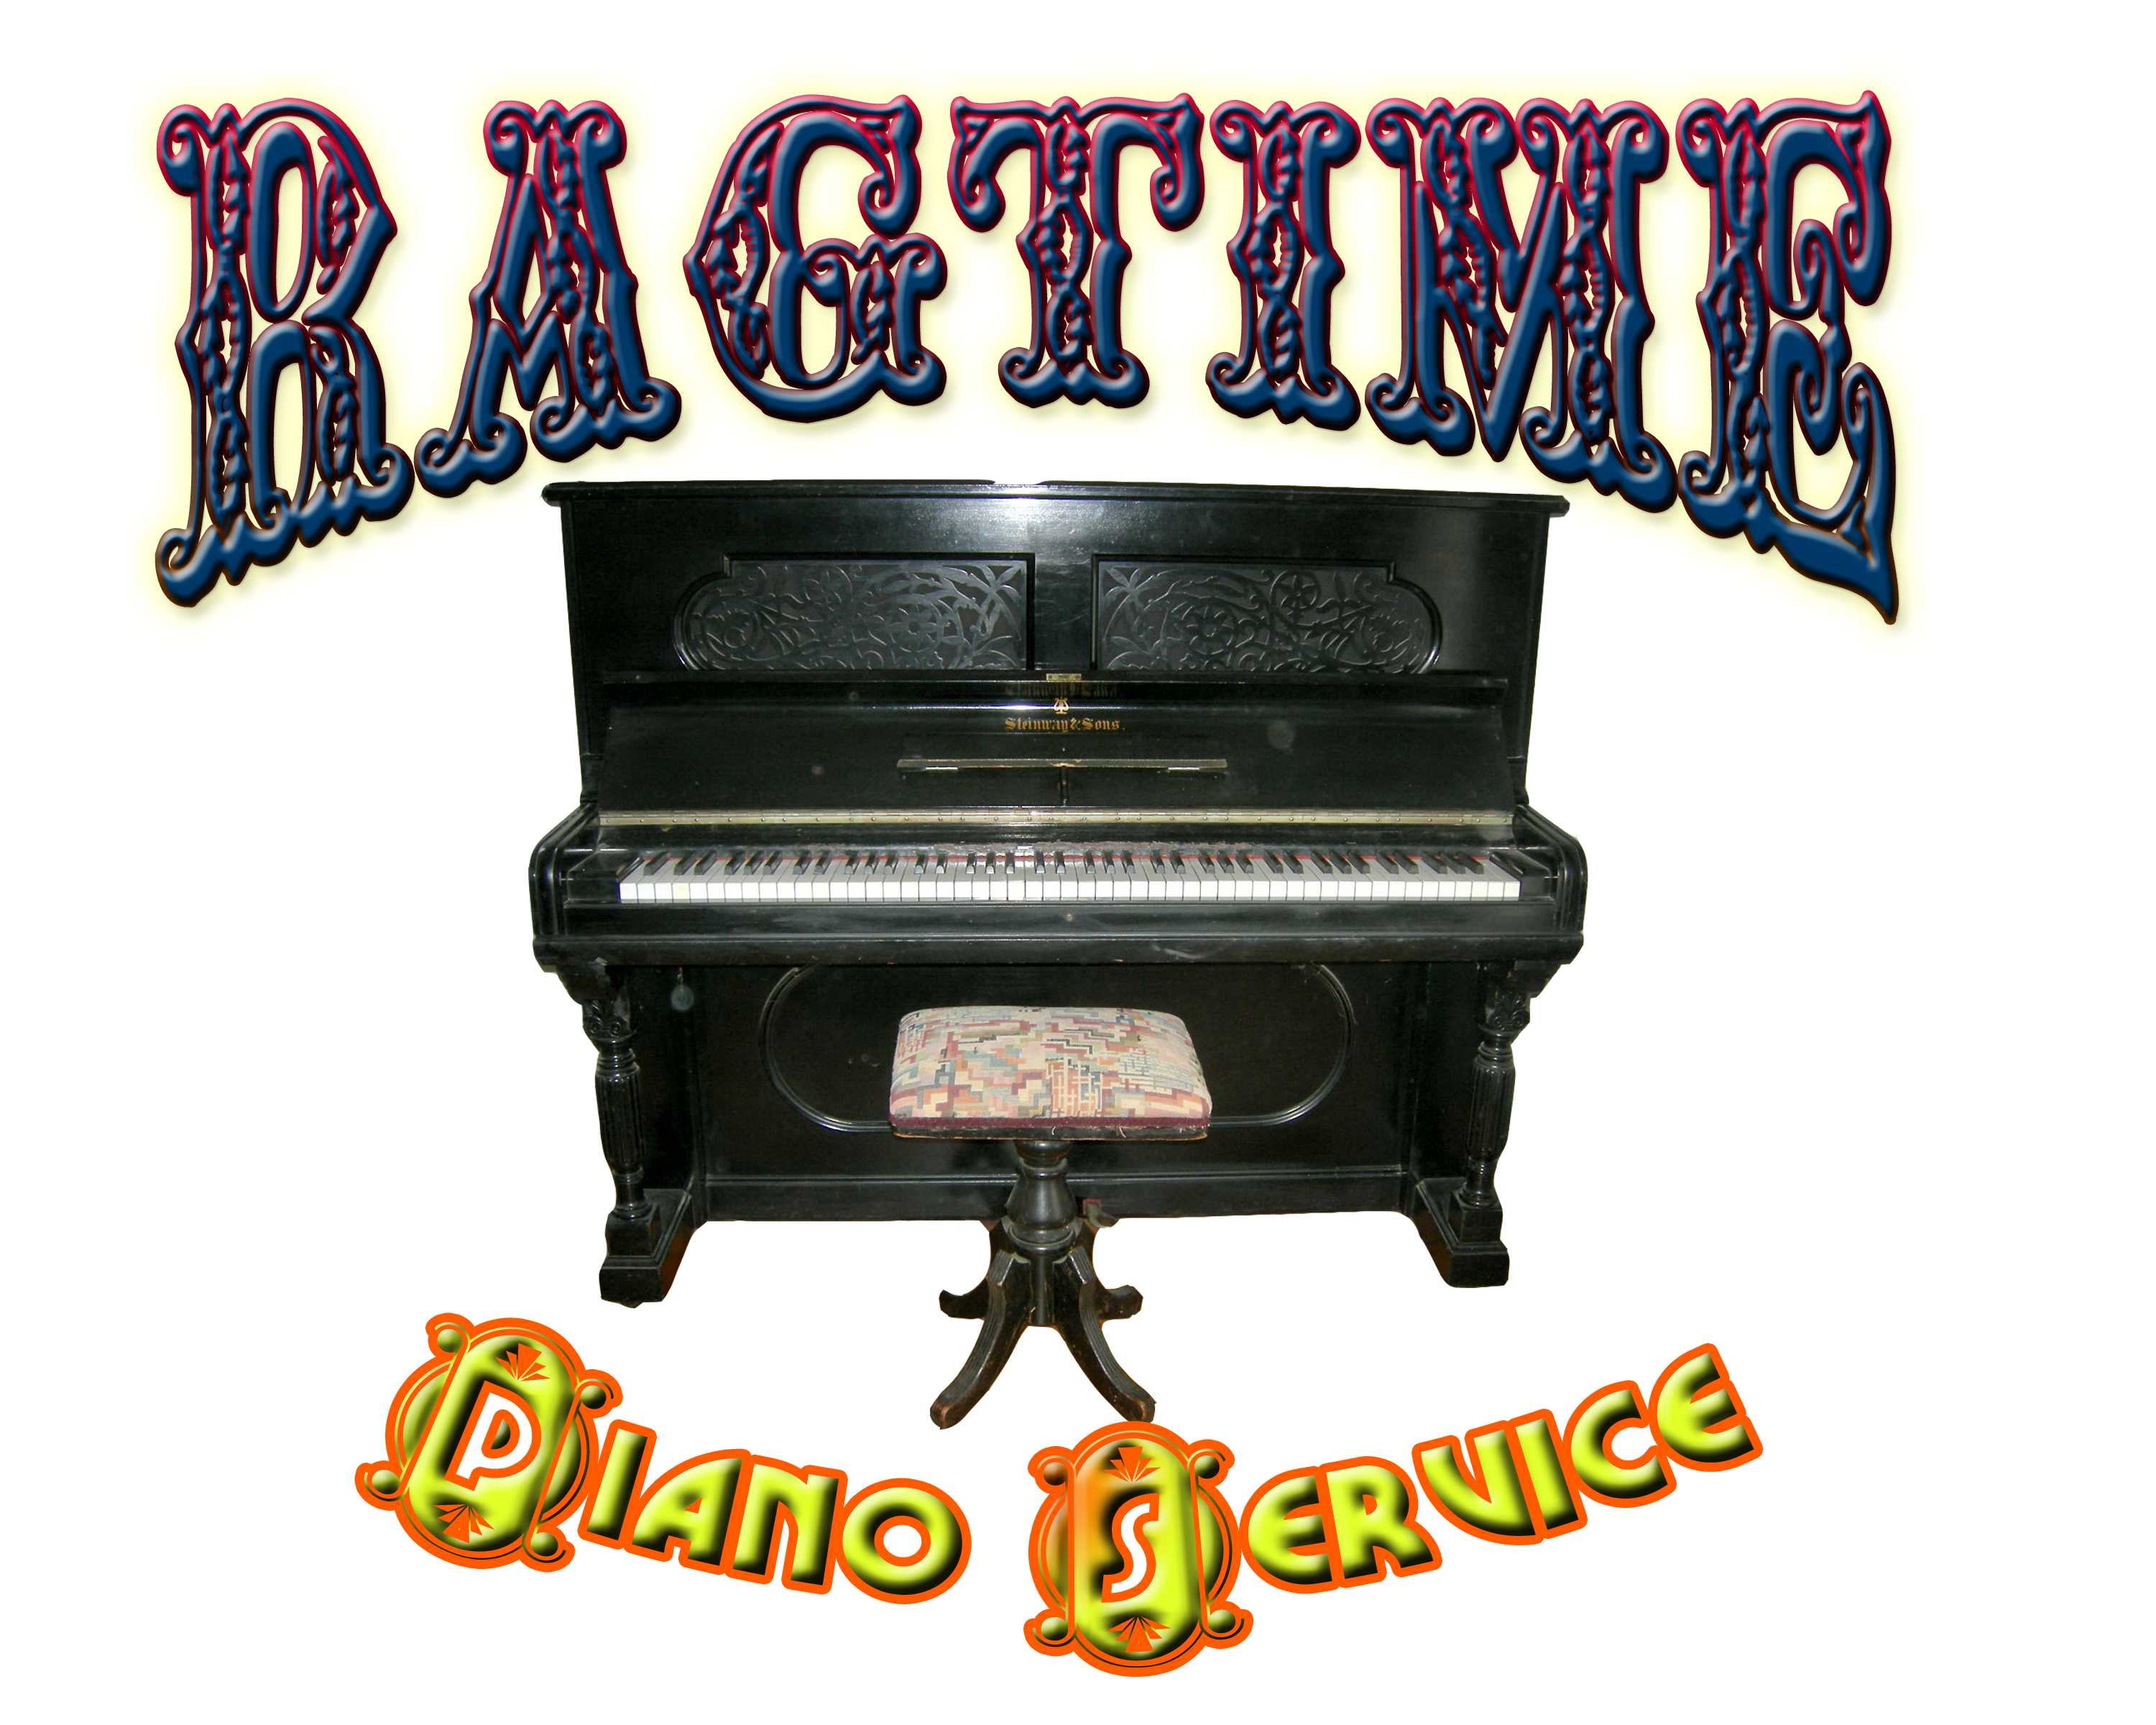 RAGTIME Piano Service.